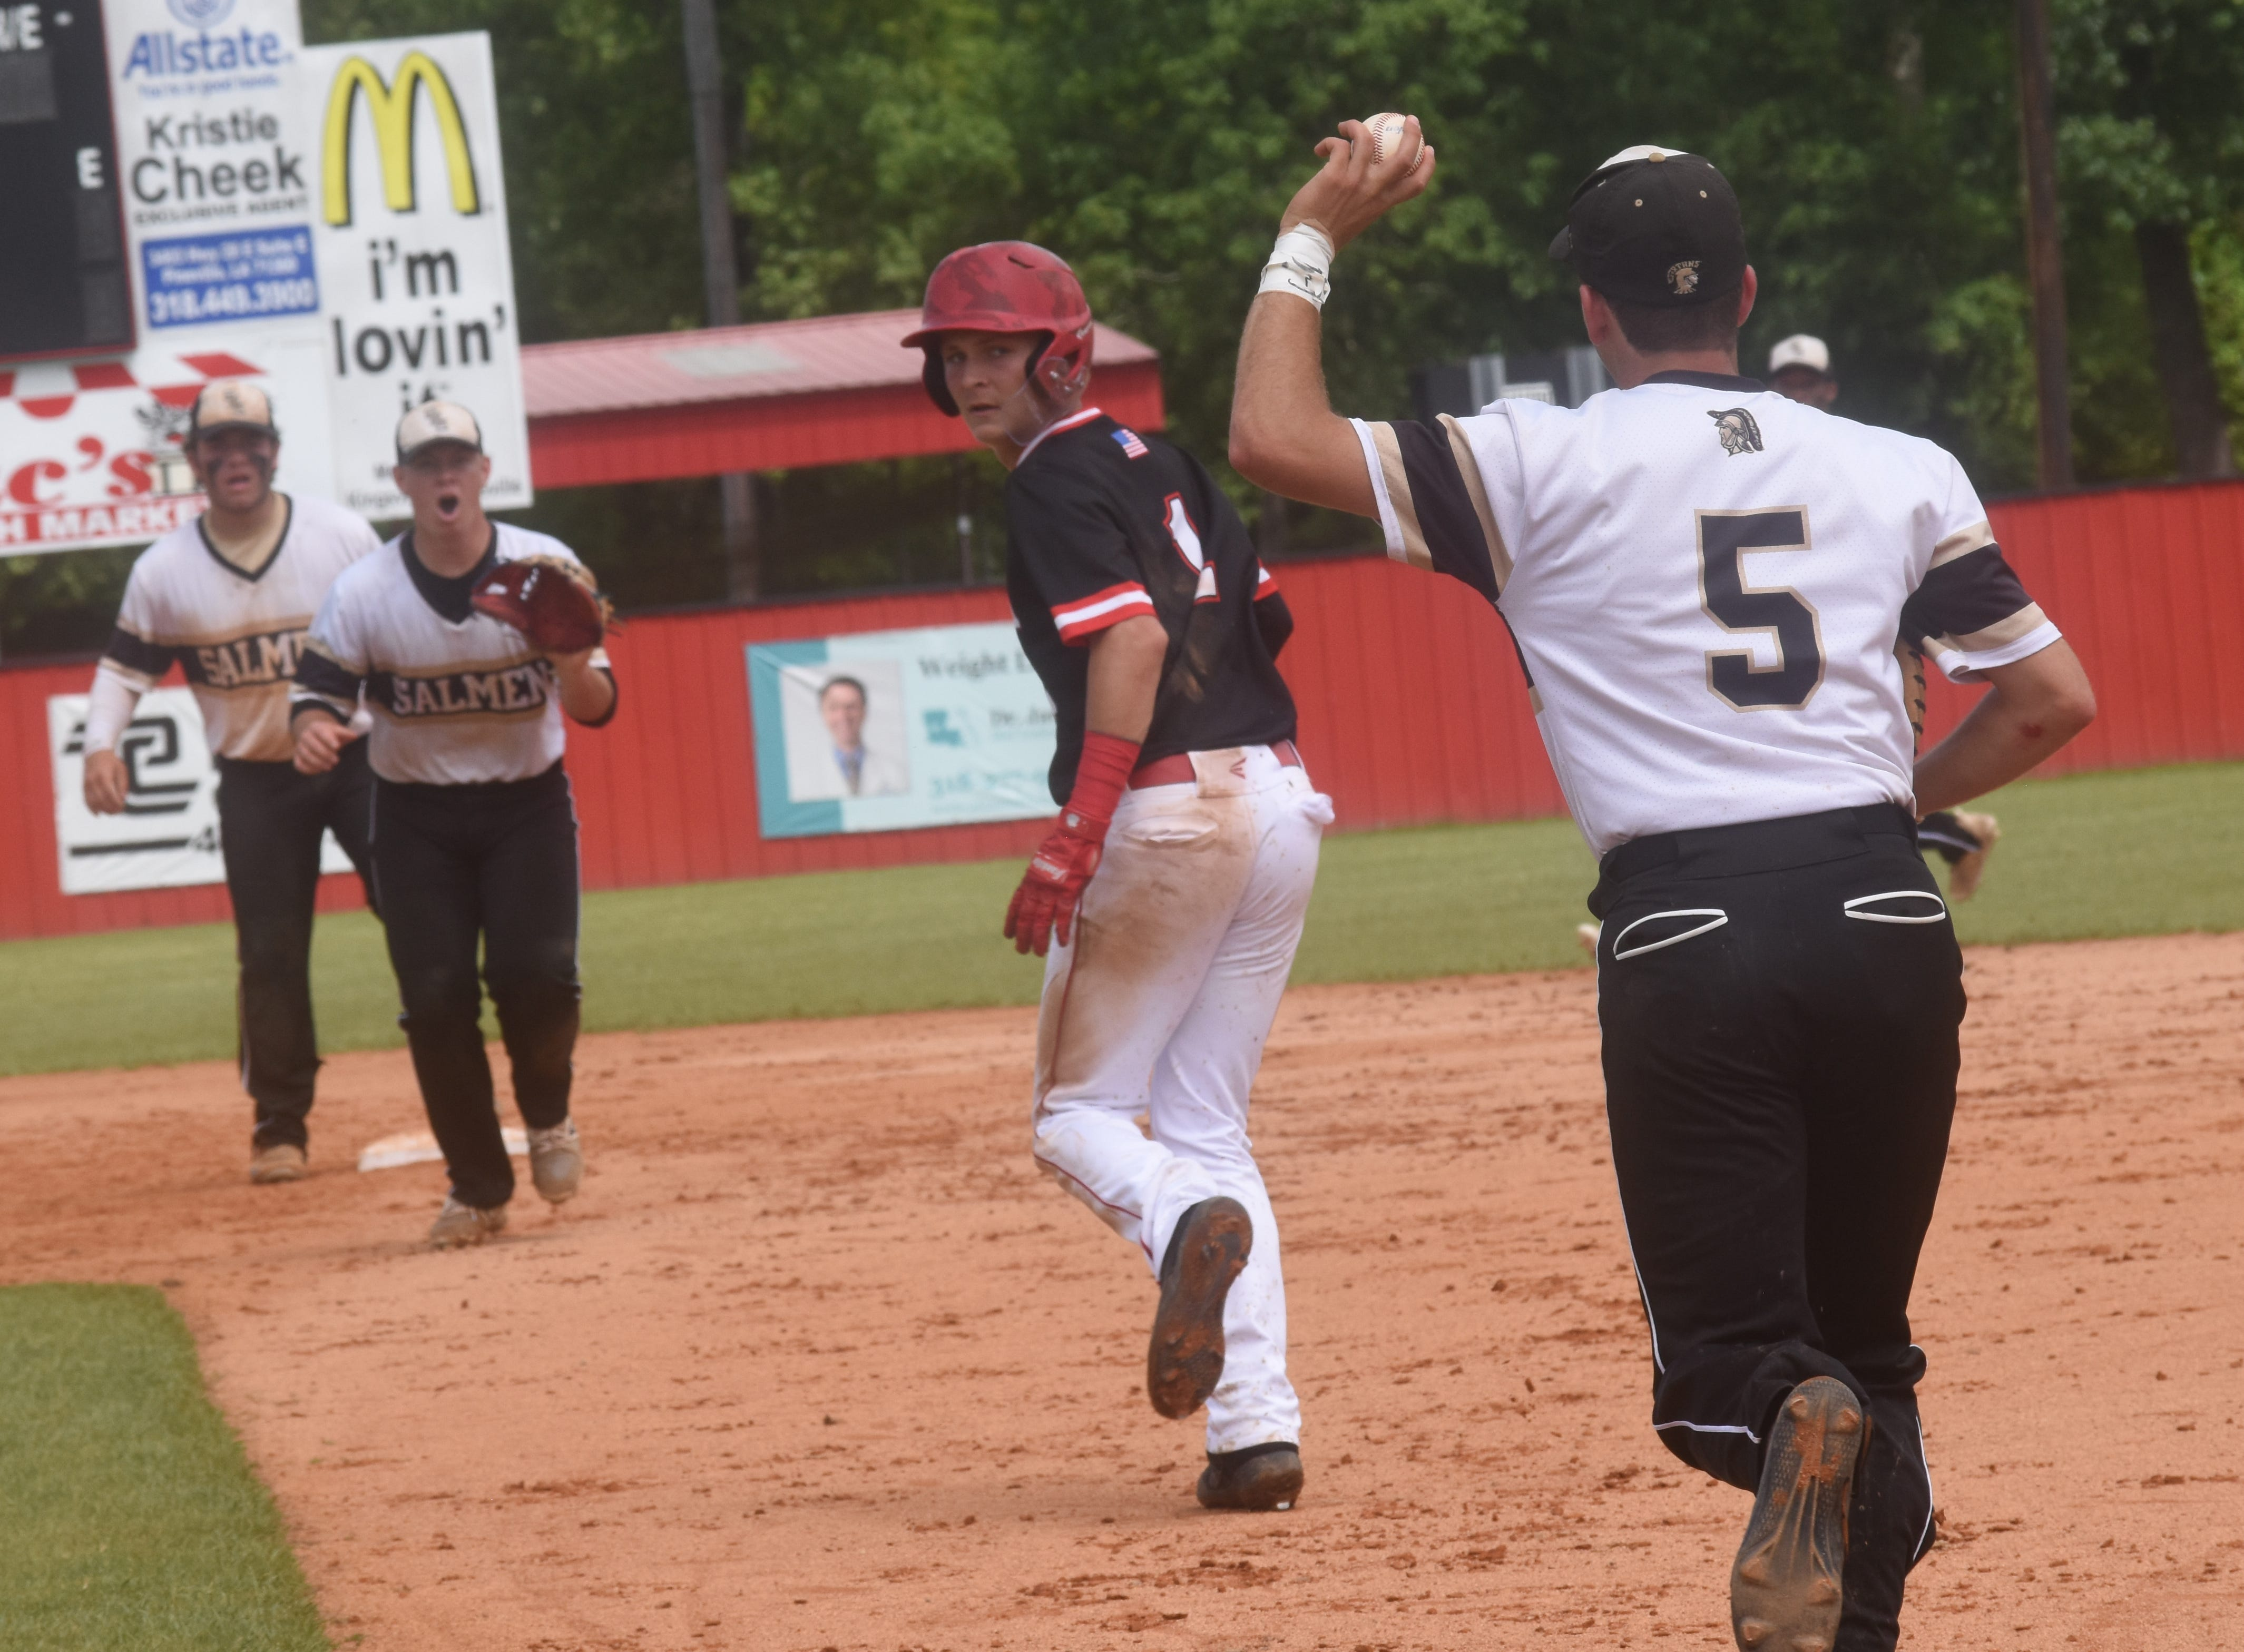 Tioga High School defeats Salmen High School of Slidell 16-3  in the Class 4A playoff game. Tioga is on their way to the 2019 Allstate Sugar Bowl/LHSAA Baseball State Tournament in Sulphur.